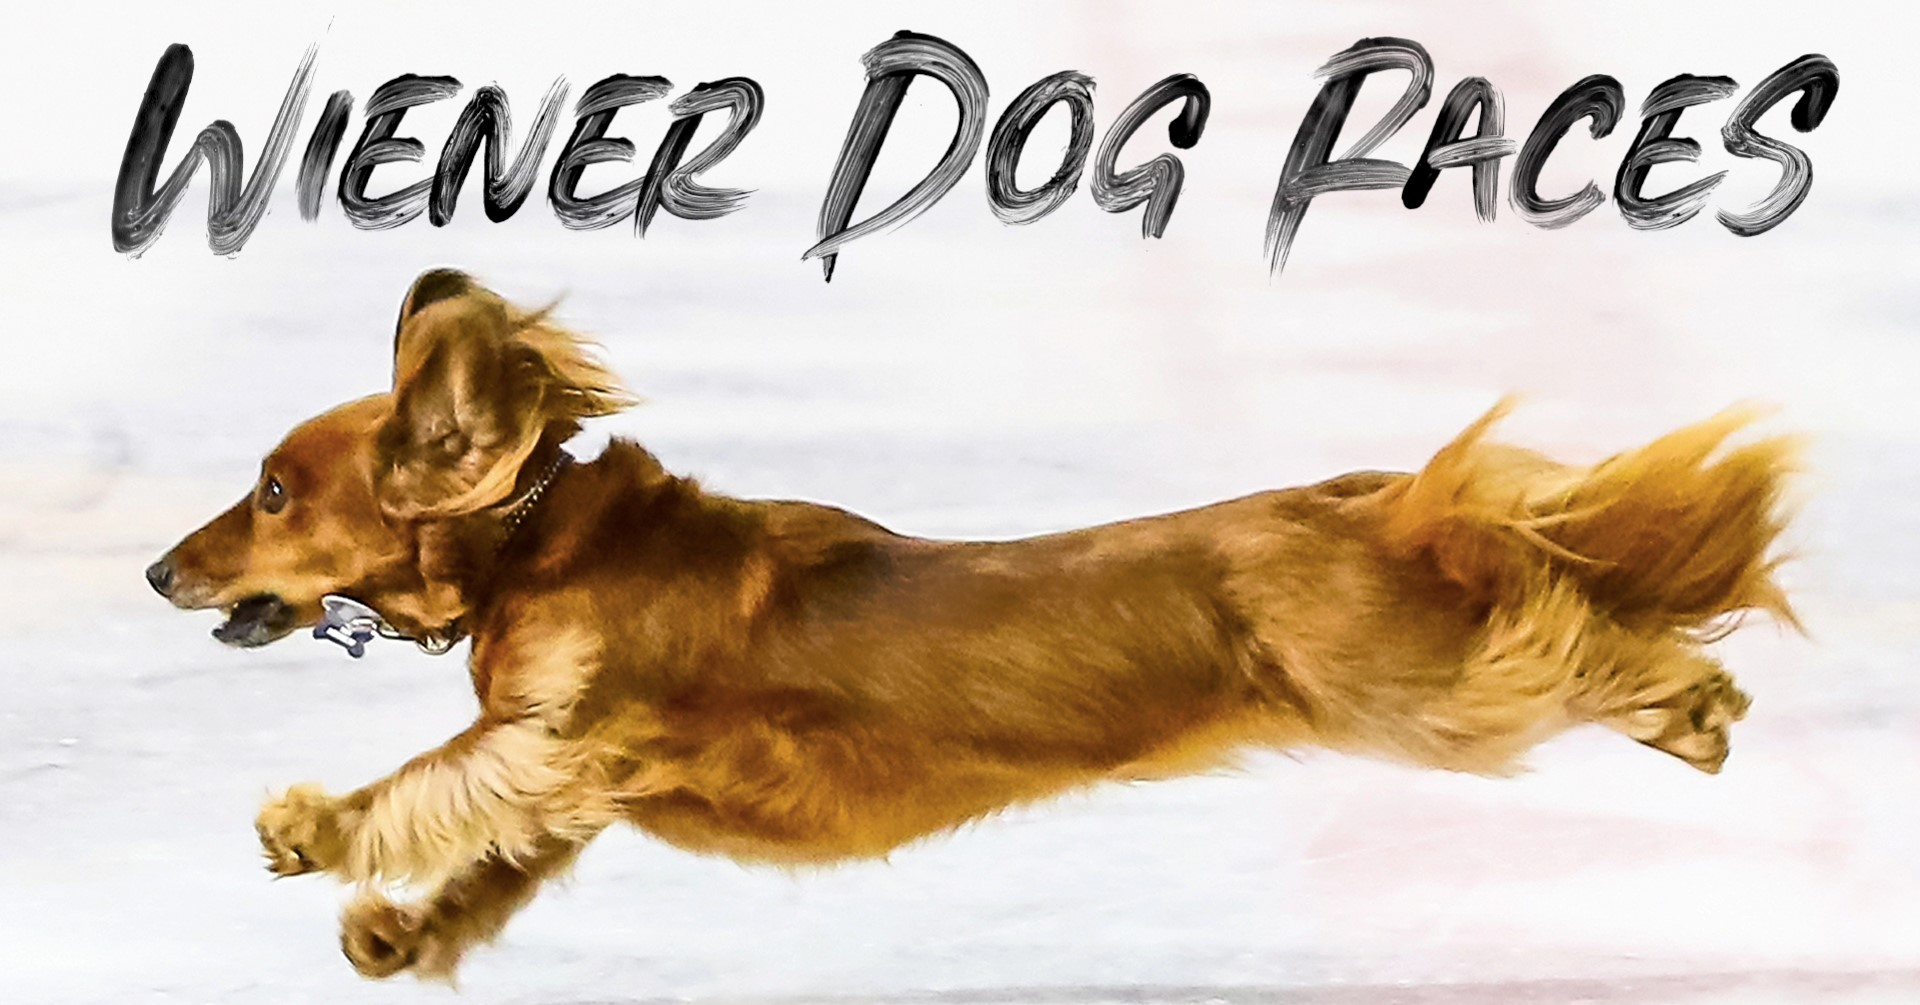 Knoxville Ice Bears Wiener Dog Races